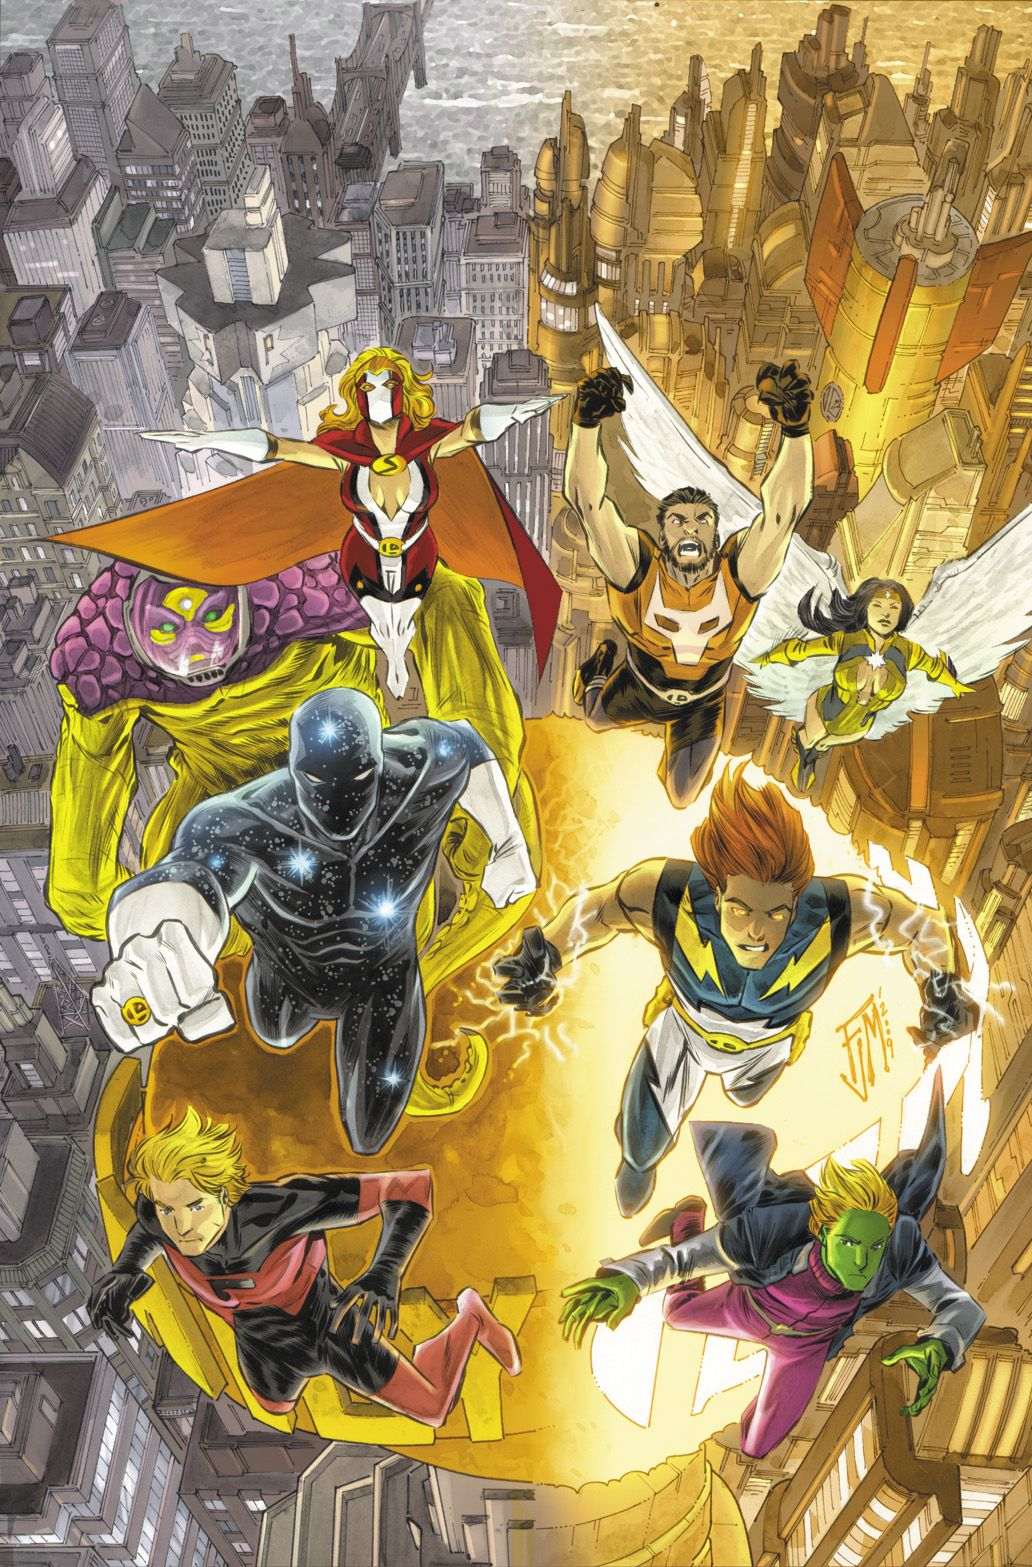 ✭ Legion of Super Heroes by Francis Manapul